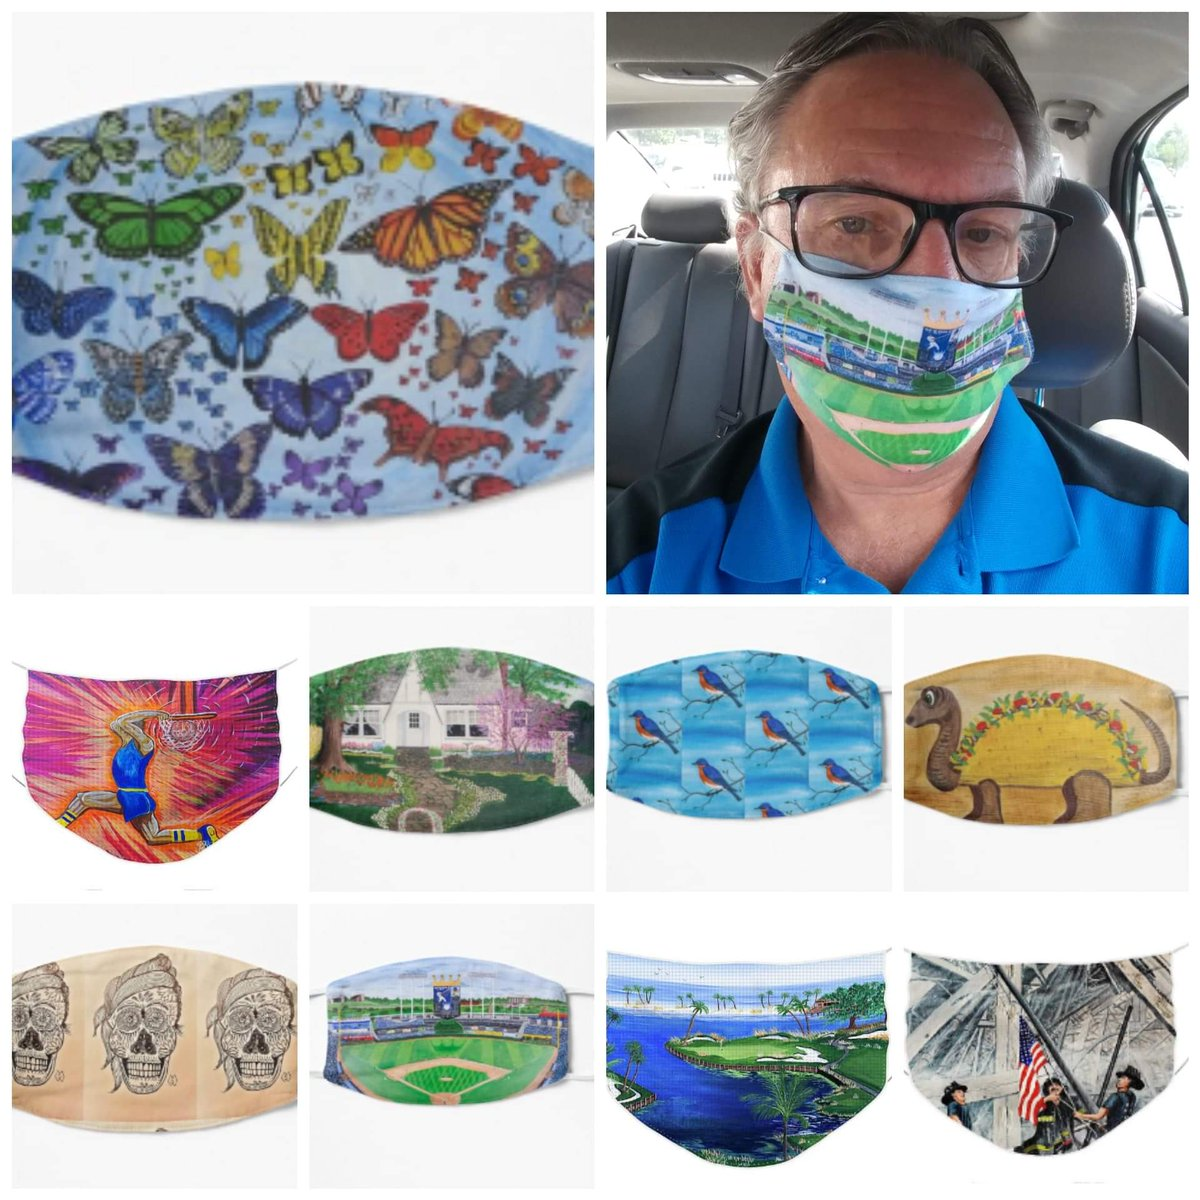 Thank you to the buyers of face masks with my paintings printed on them.   Here are pics of my face masks that have been purchased    #mattstarrfineart #facemask #covid #mask #skincare #coronavirus #staysafe #beauty #stayhome #skincareroutine #masks #art